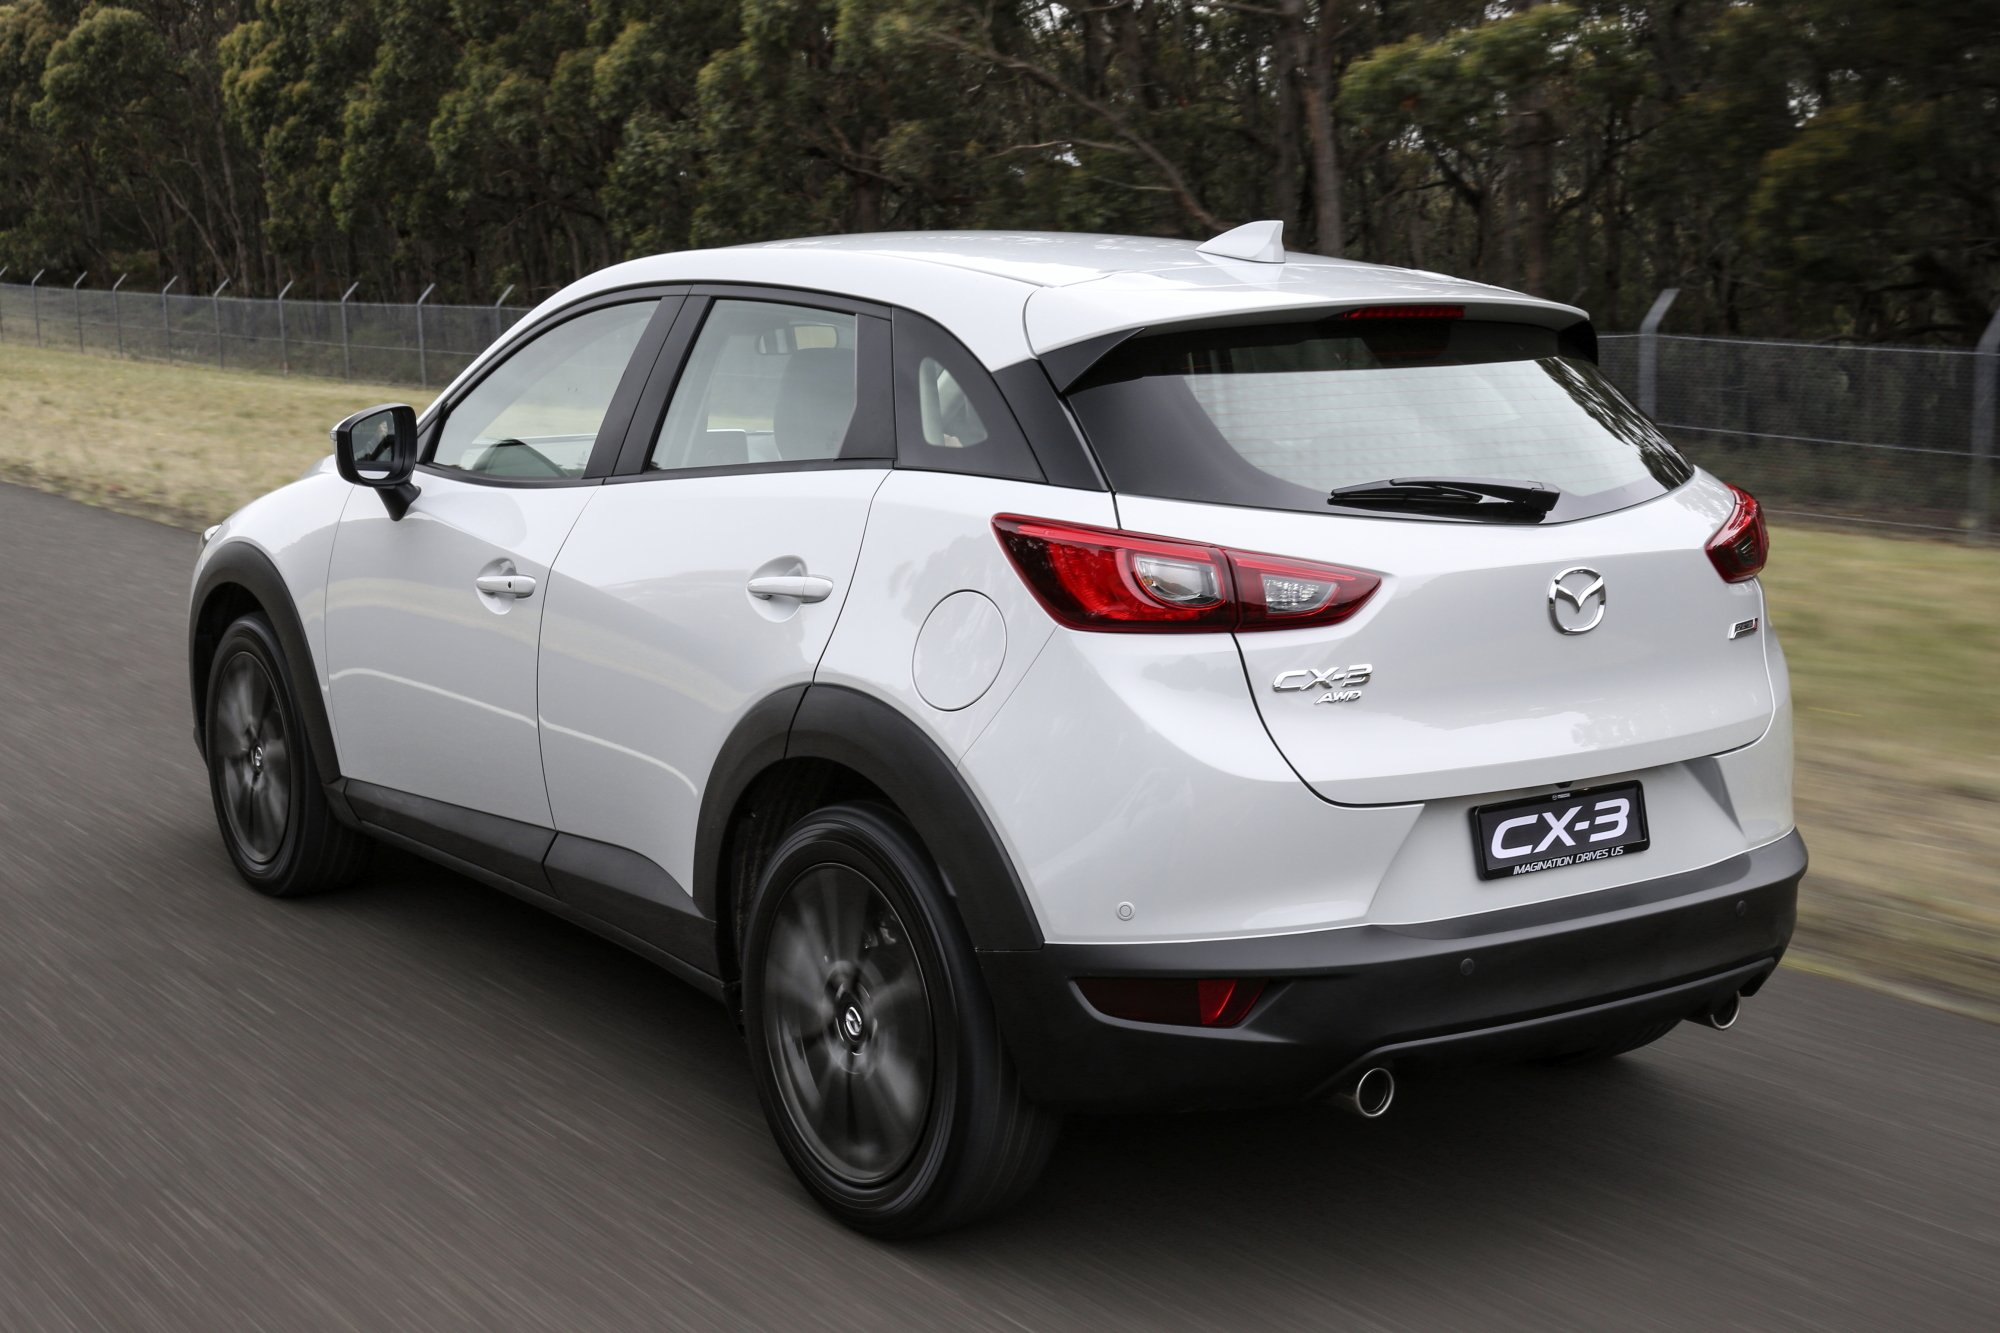 2015 mazda cx-3 review | caradvice